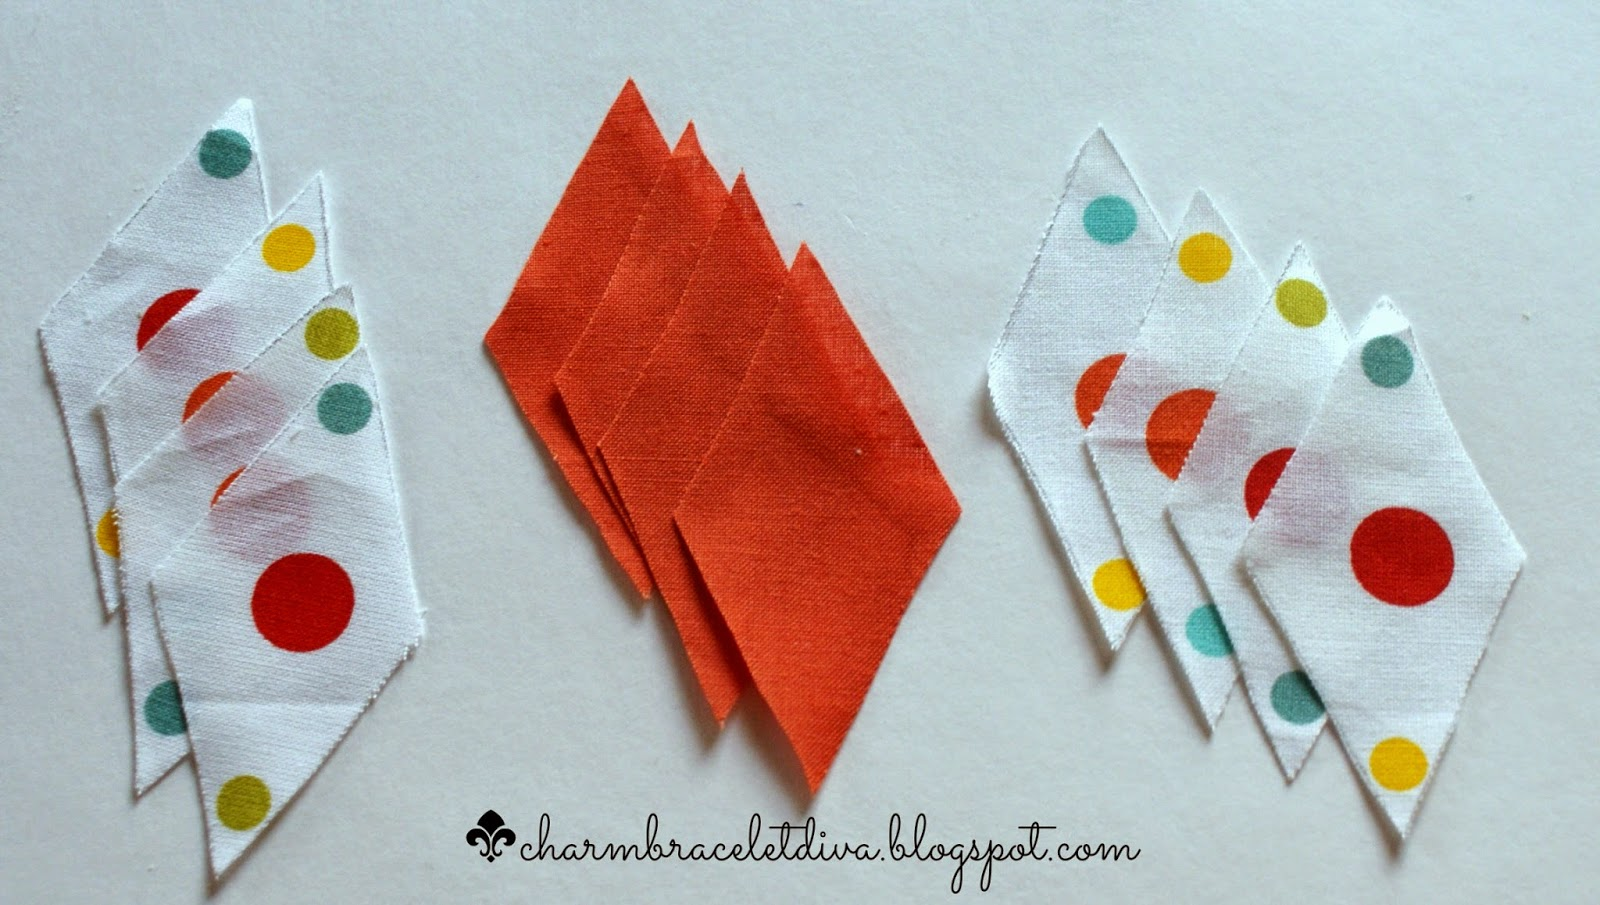 polka dot and solid orange fabric diamond shape